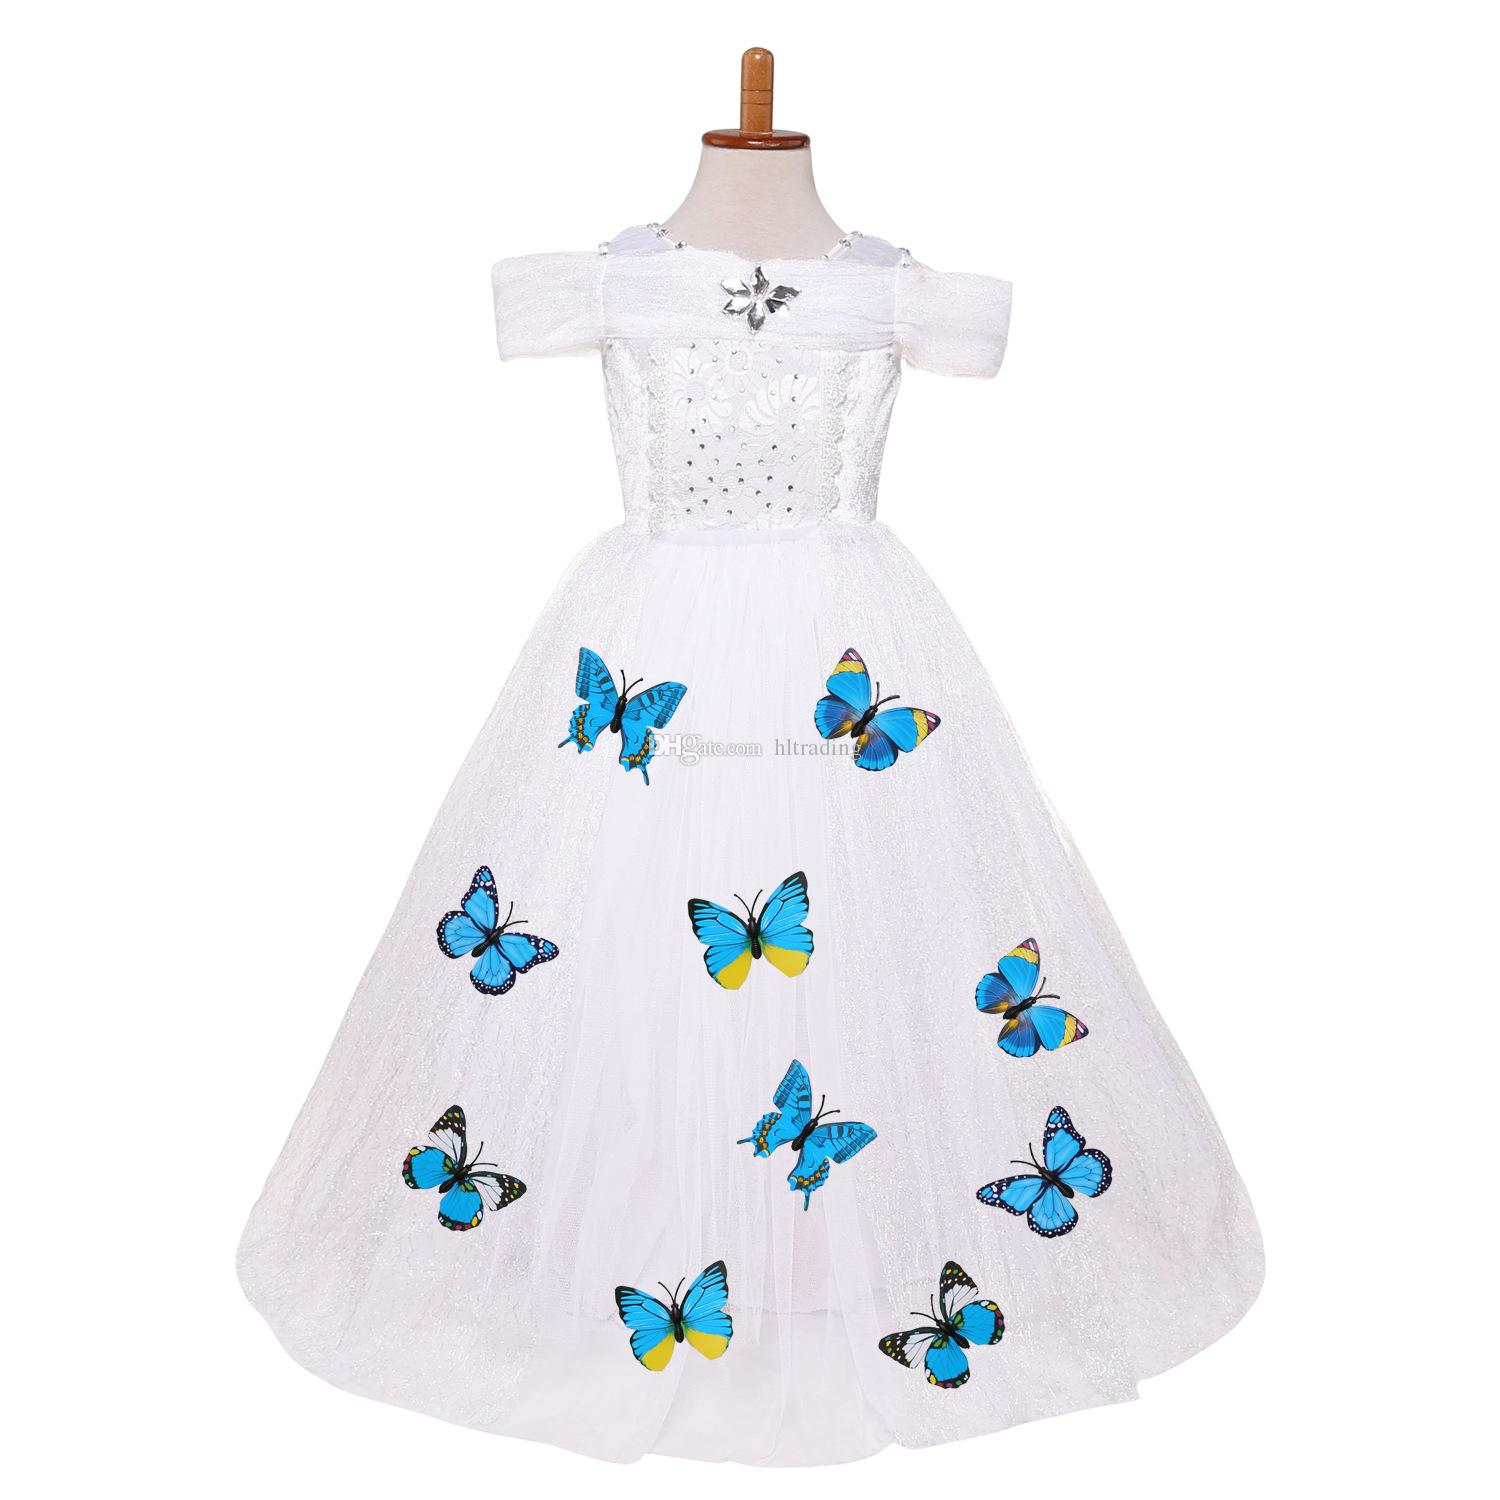 Baby Girls butterfly lace Dress Christmas Tutu princess Dresses Kids snowflake diamond Party Dress C2787